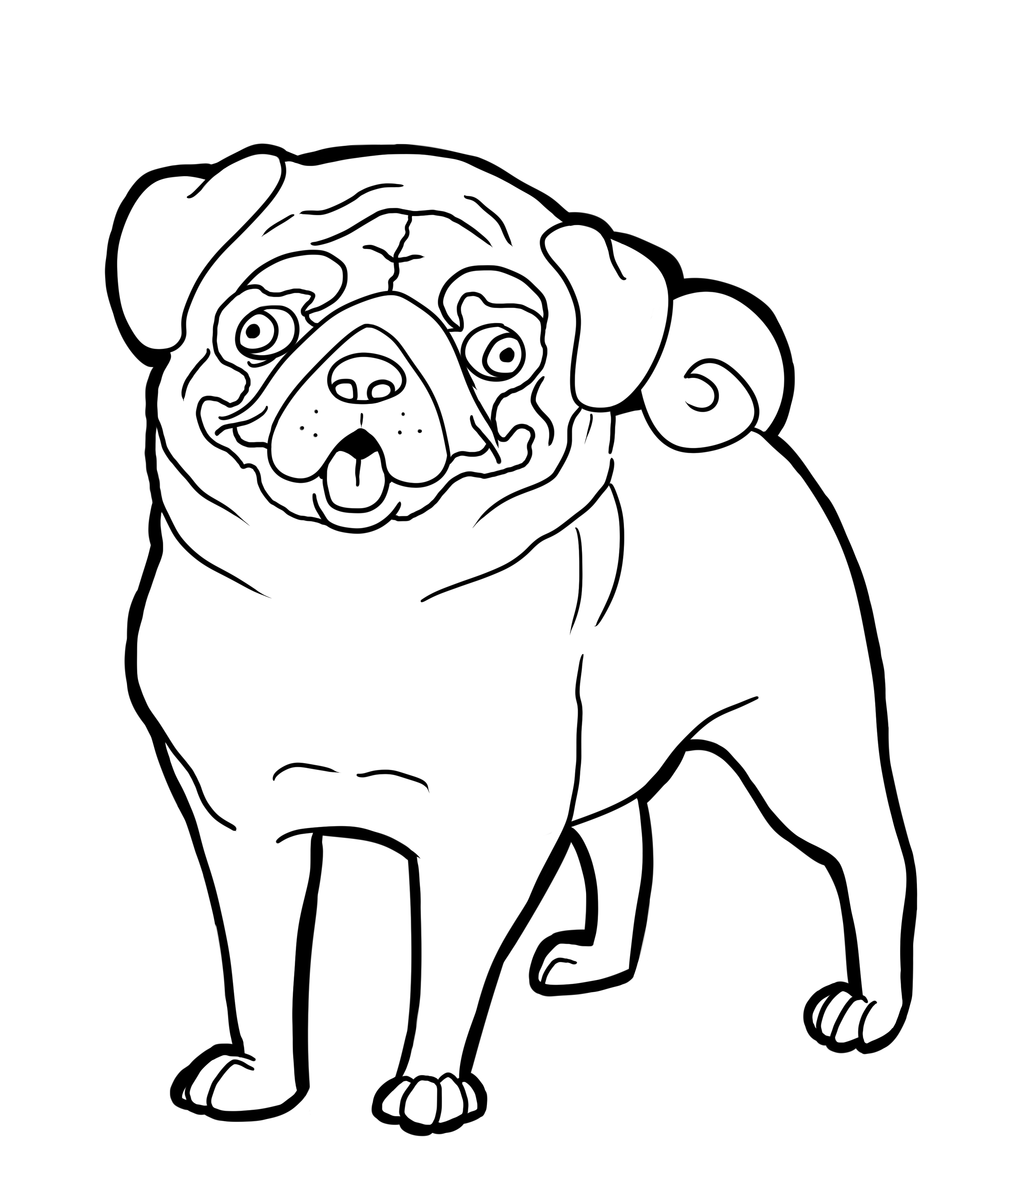 pugs coloring pages to print - photo#13